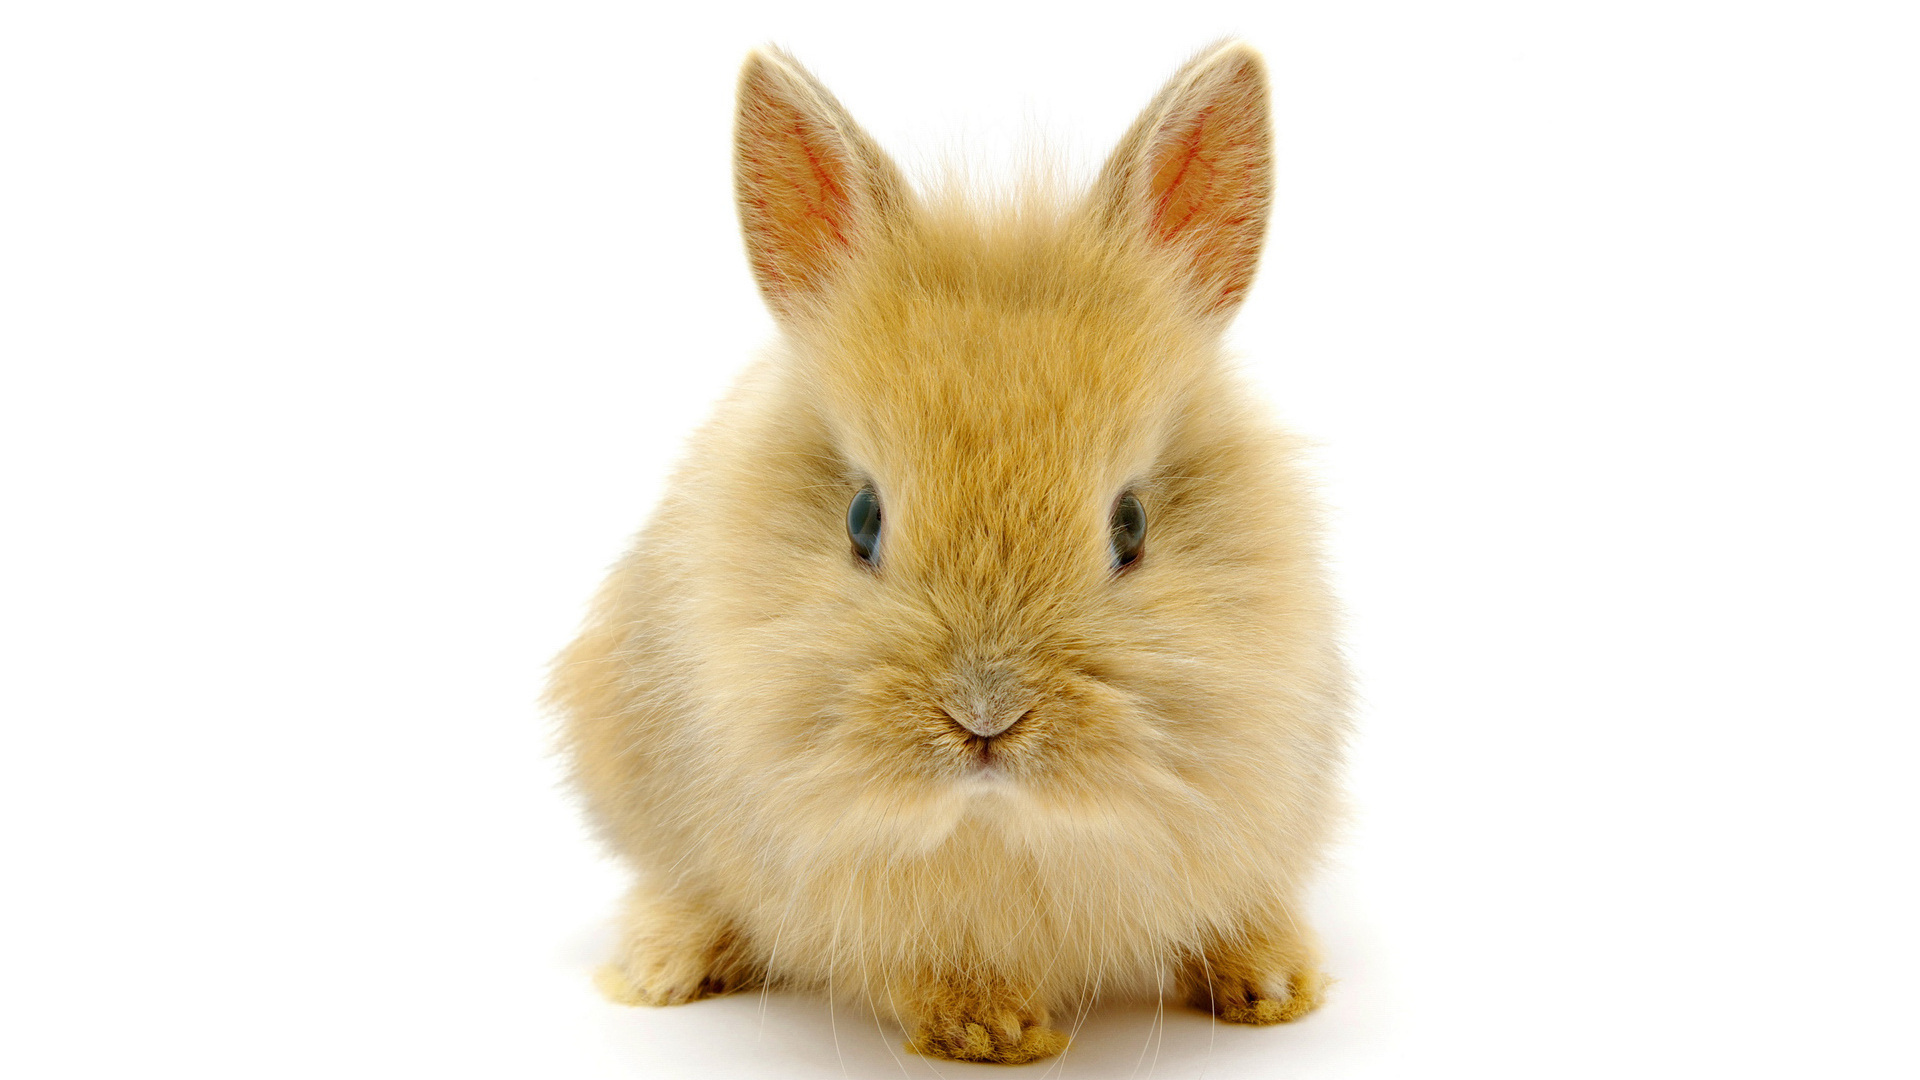 Cute White Baby Rabbits Wallpapers Rabbit Wallpapers Pictures Images